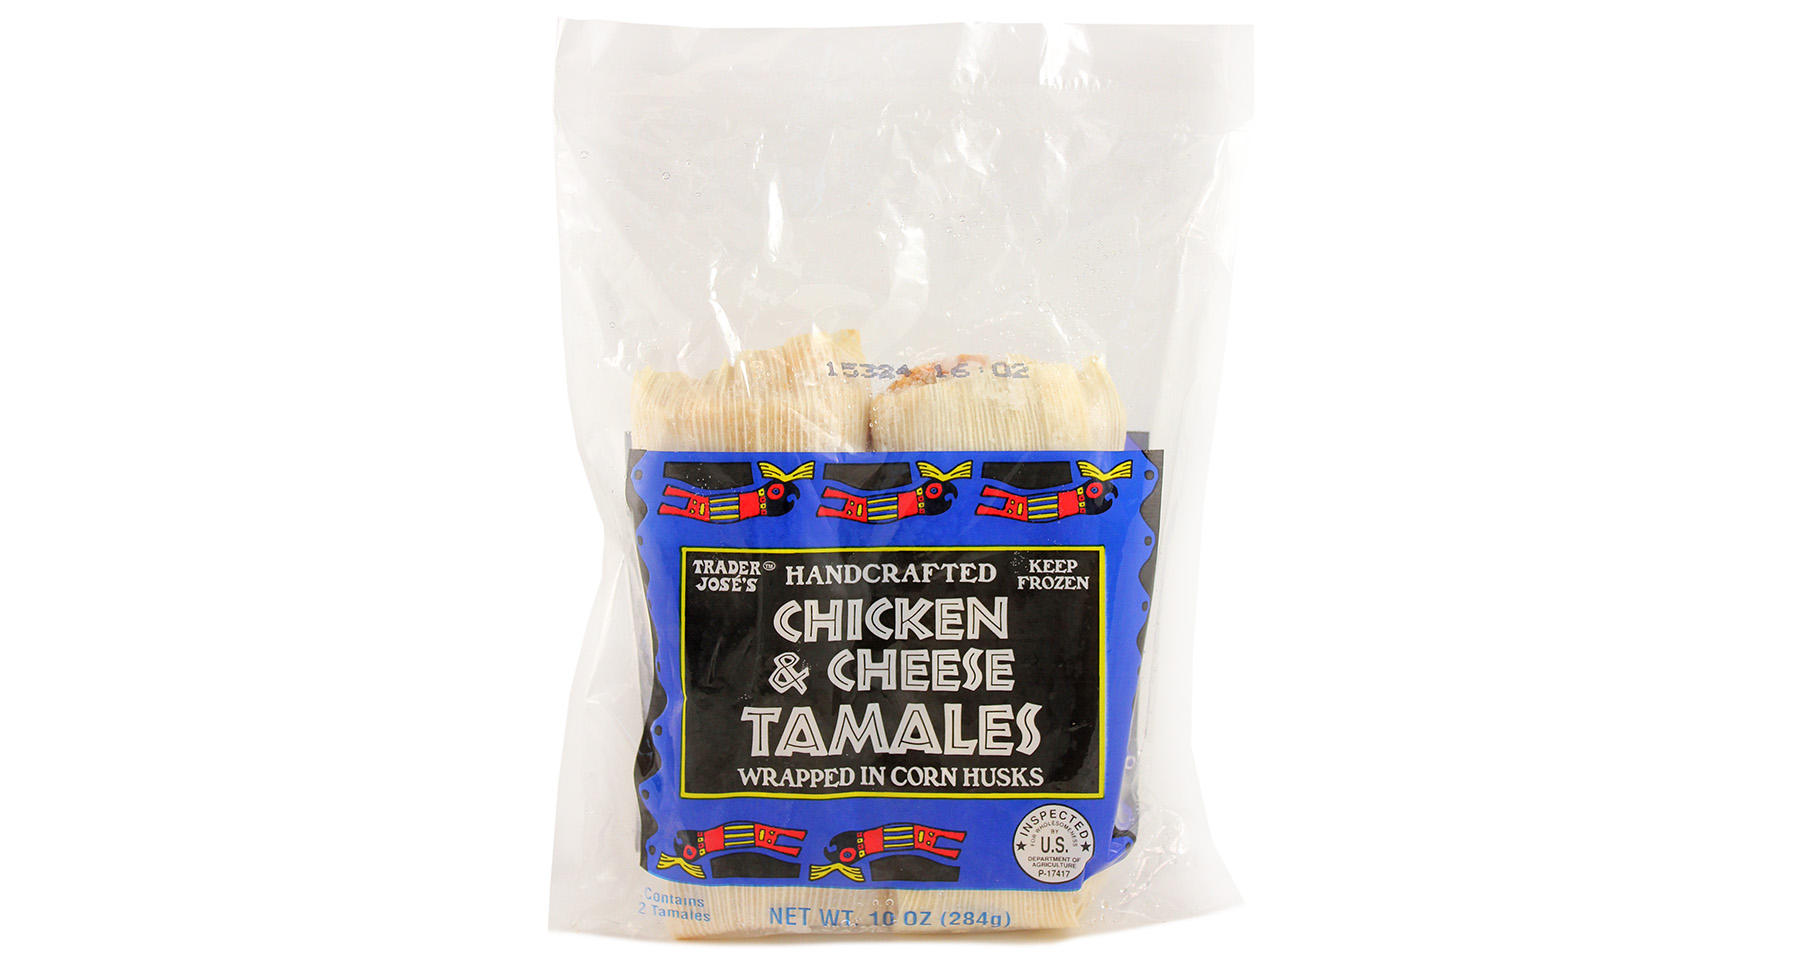 Chicken and Cheese Tamales